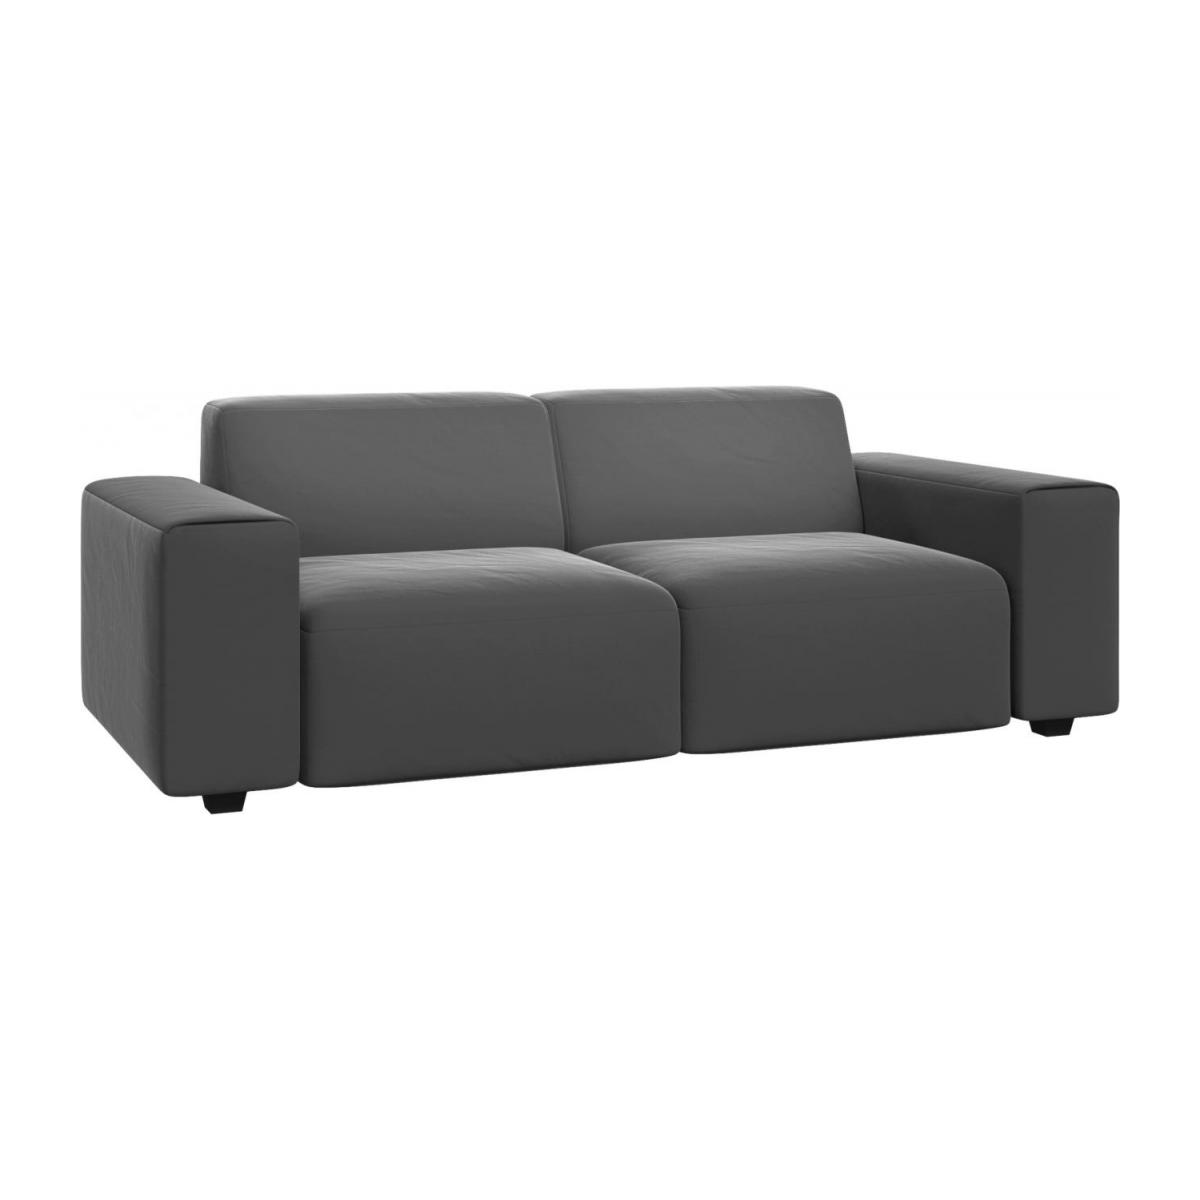 posada 3 sitzer sofa aus samt grau habitat. Black Bedroom Furniture Sets. Home Design Ideas